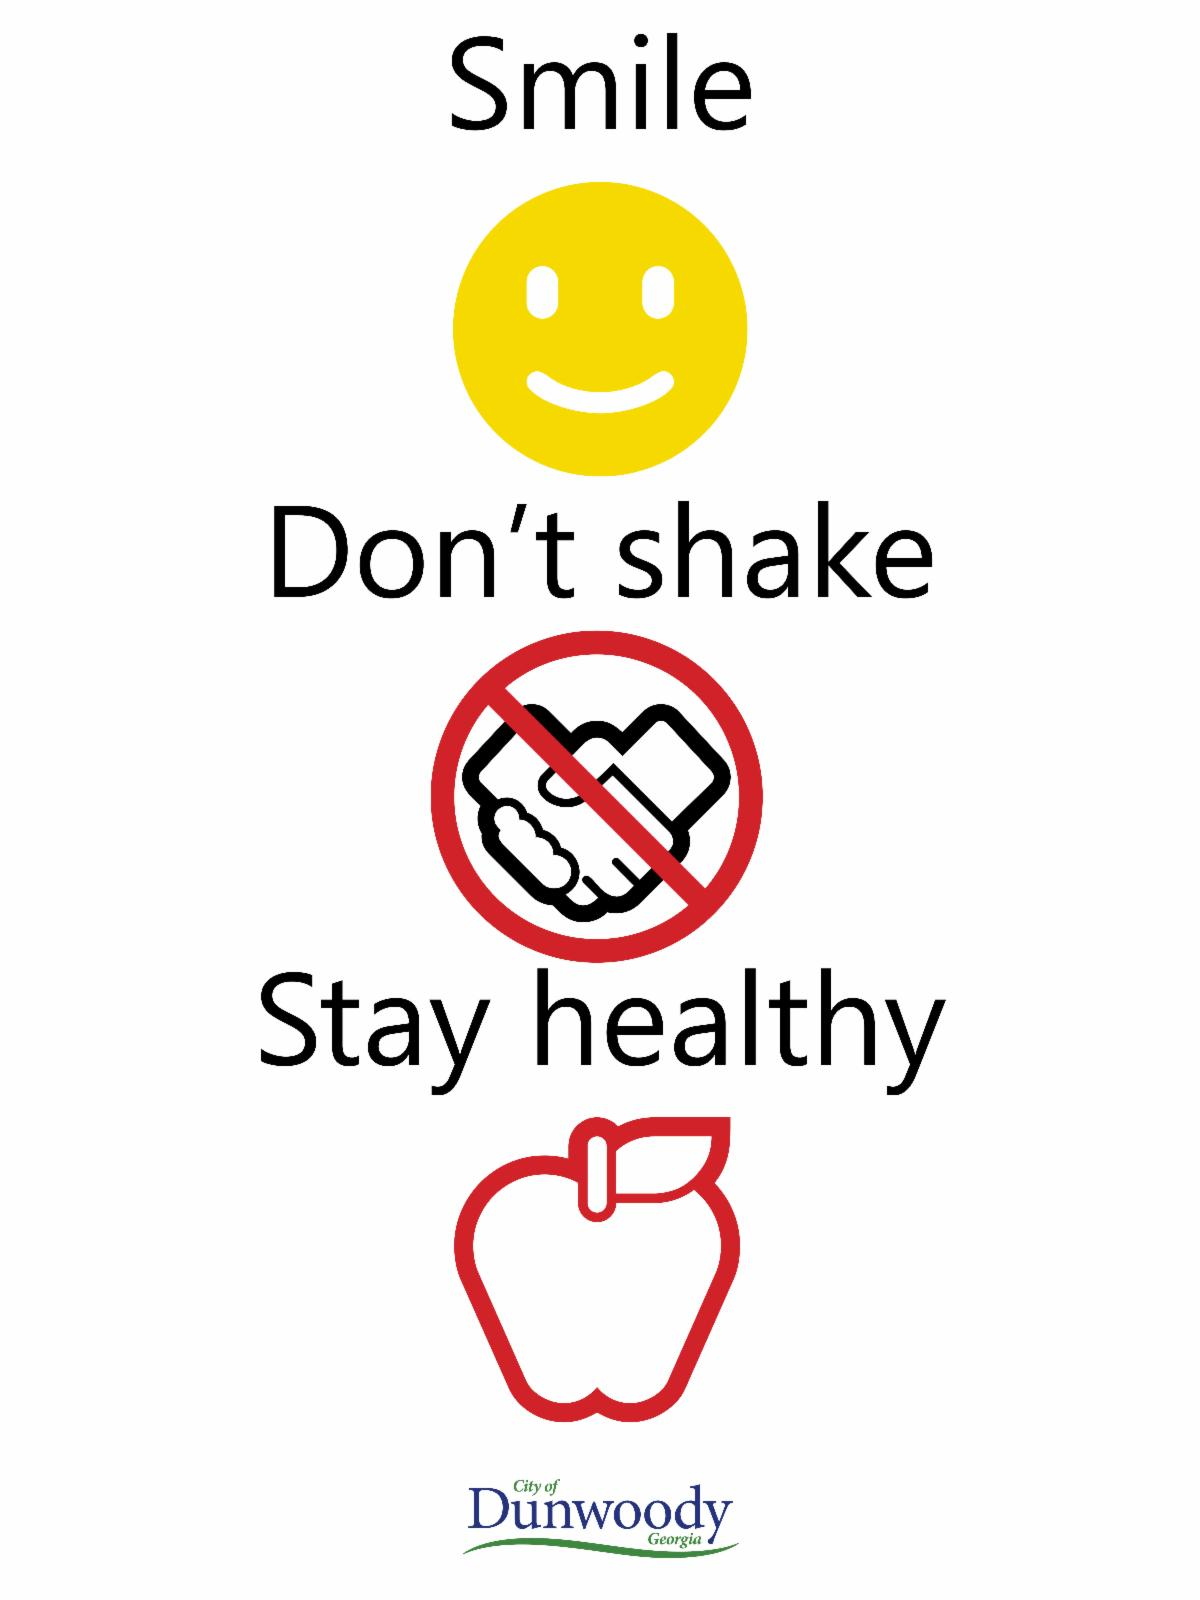 words say smile don't shake stay healthy